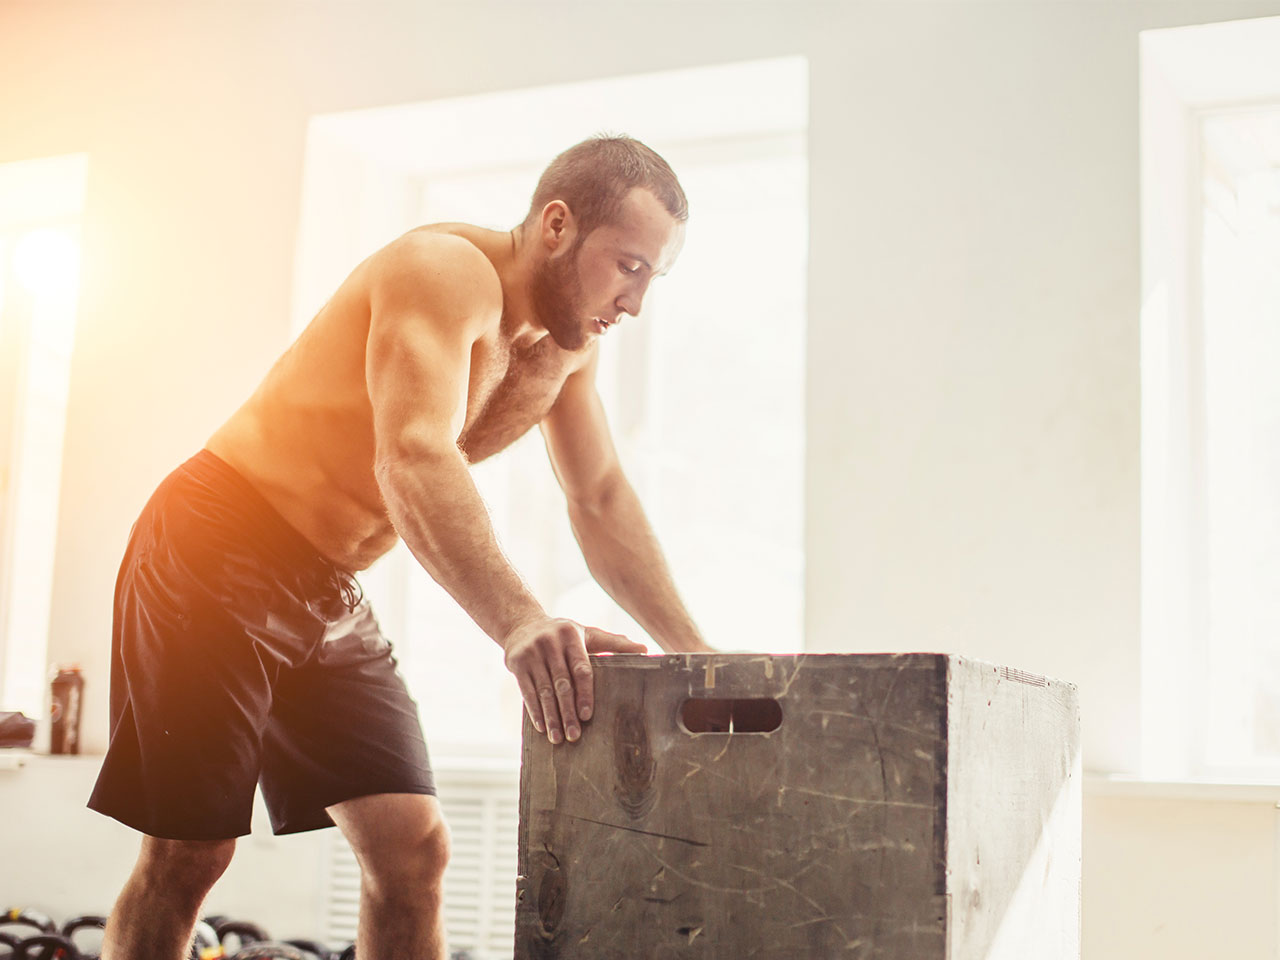 Discussion on this topic: How To Prevent—And Deal With—Post-Workout Muscle Soreness, how-to-prevent-and-deal-with-post-workout-muscle-soreness/